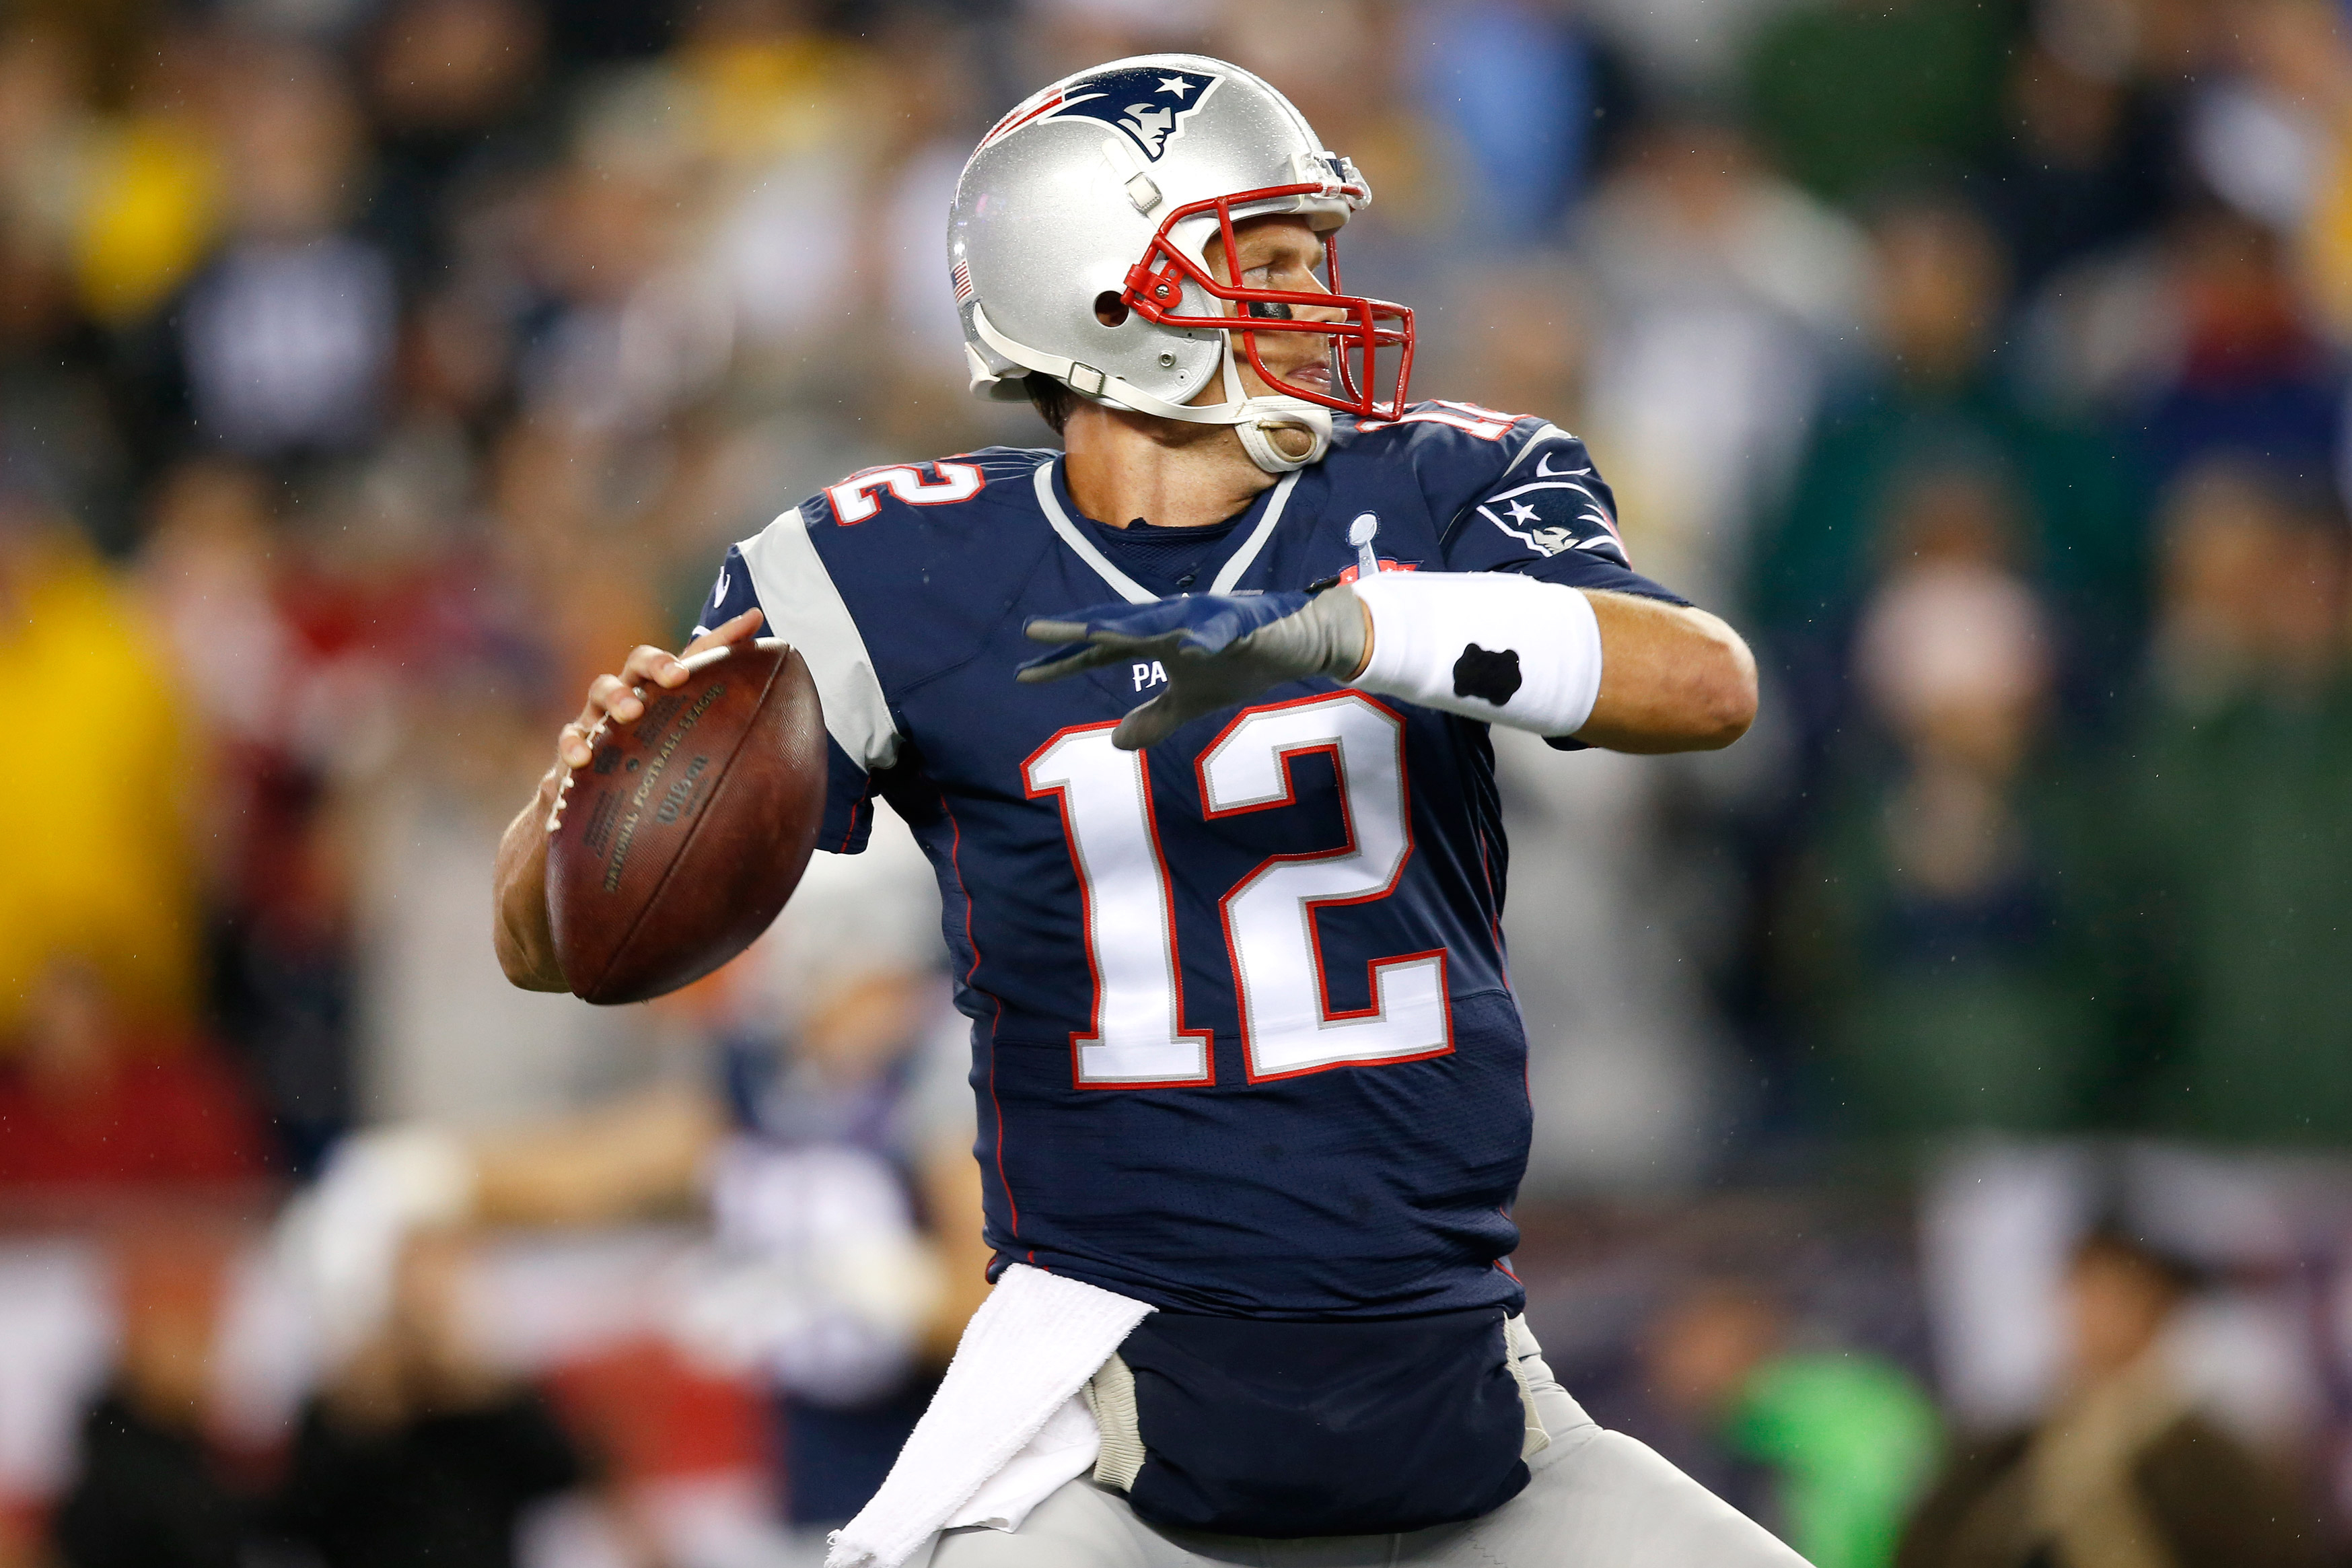 New England Patriots quarterback Tom Brady throws the ball against the Pittsburgh Steelers defense during the NFL football kickoff game at Gillette Stadium on Sept. 10, 2015 in Foxborough, Mass.